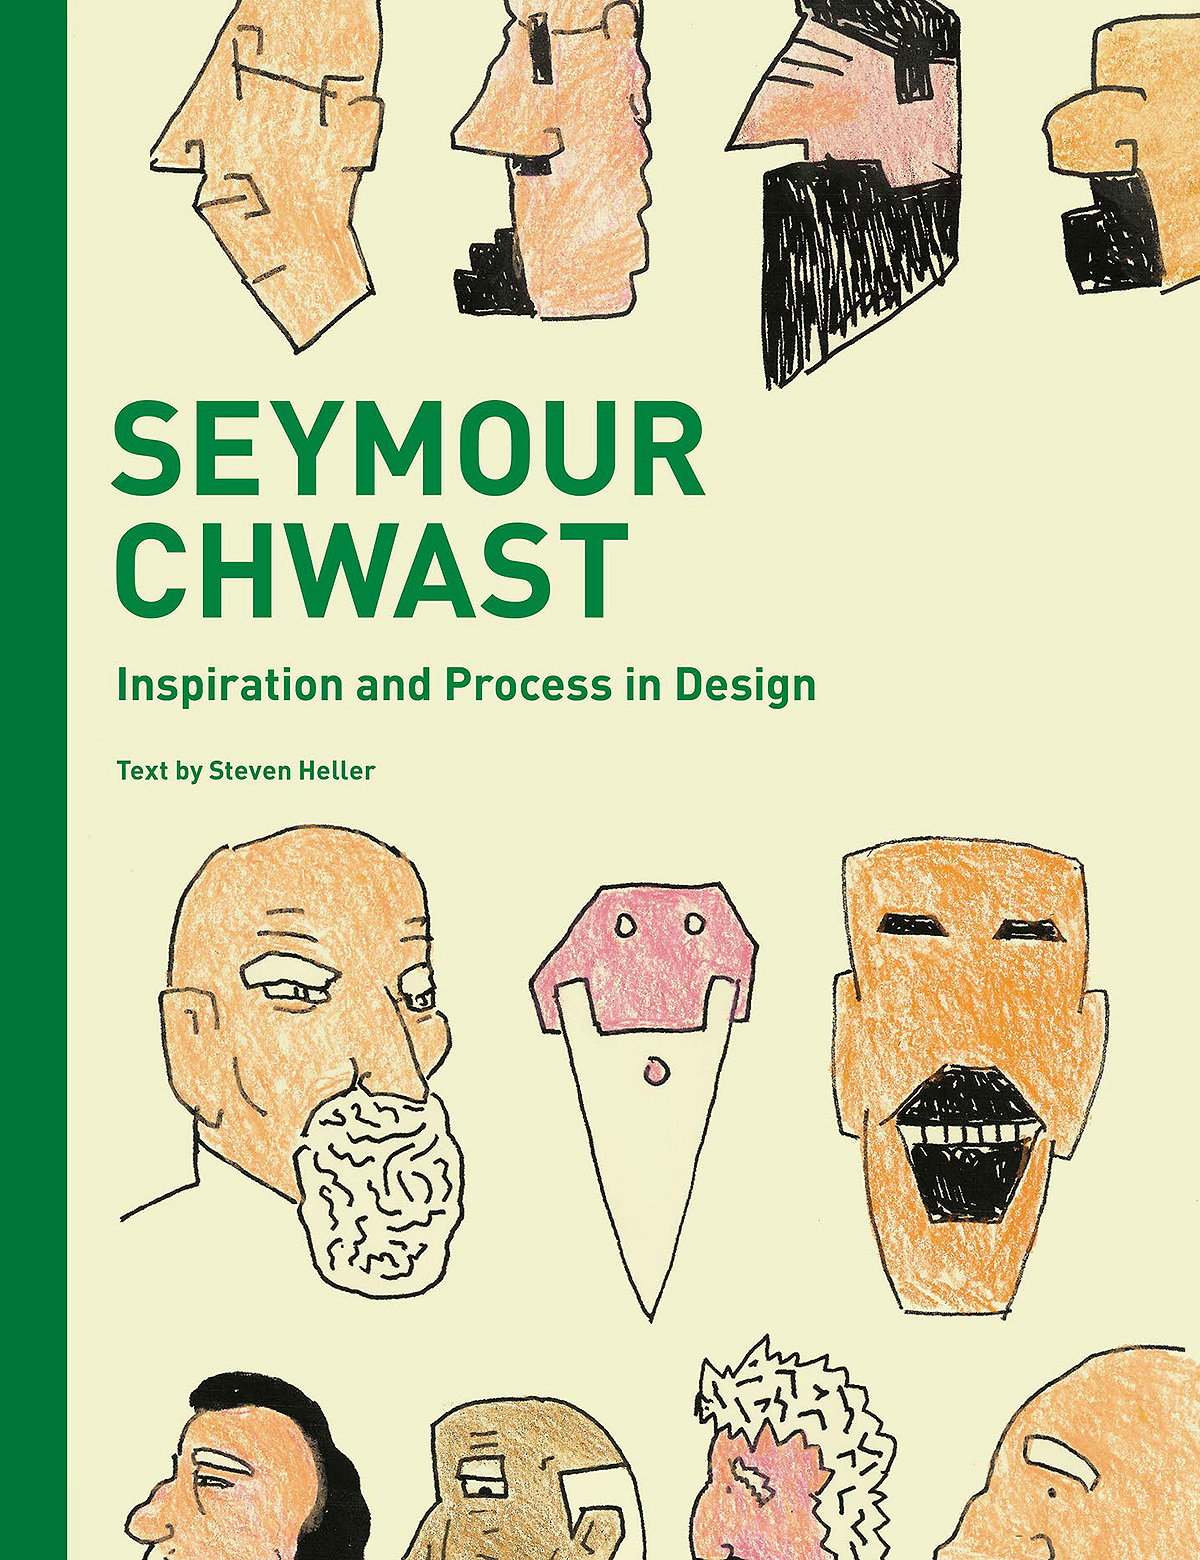 Seymour Chwast - Inspiration and Process in Design